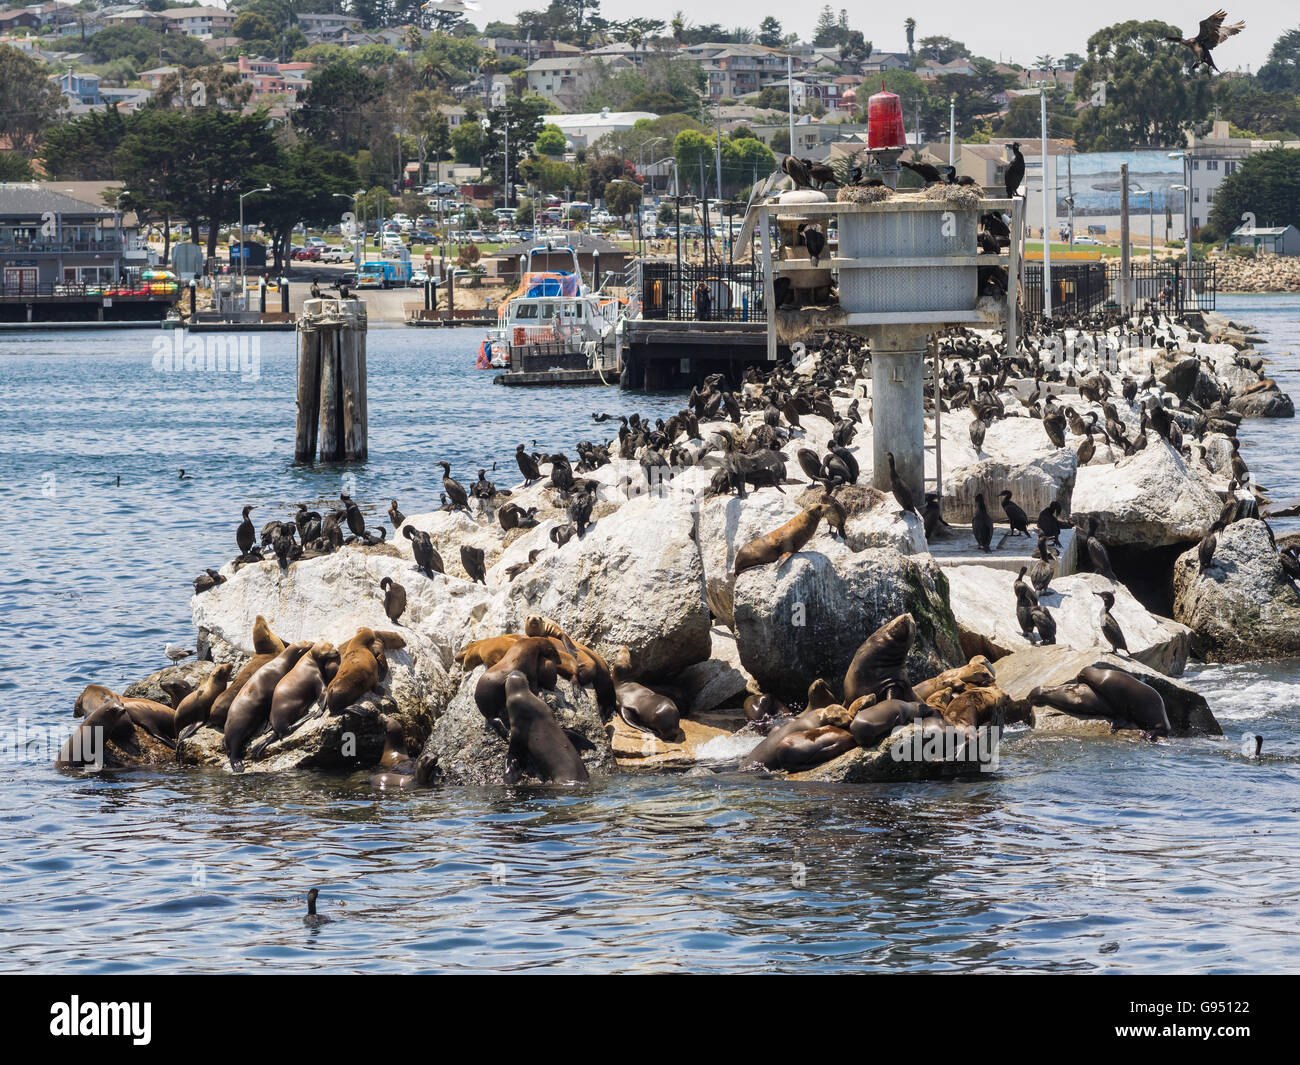 Sea lions and Kormorans in Monterey harbor, California USA - Stock Image